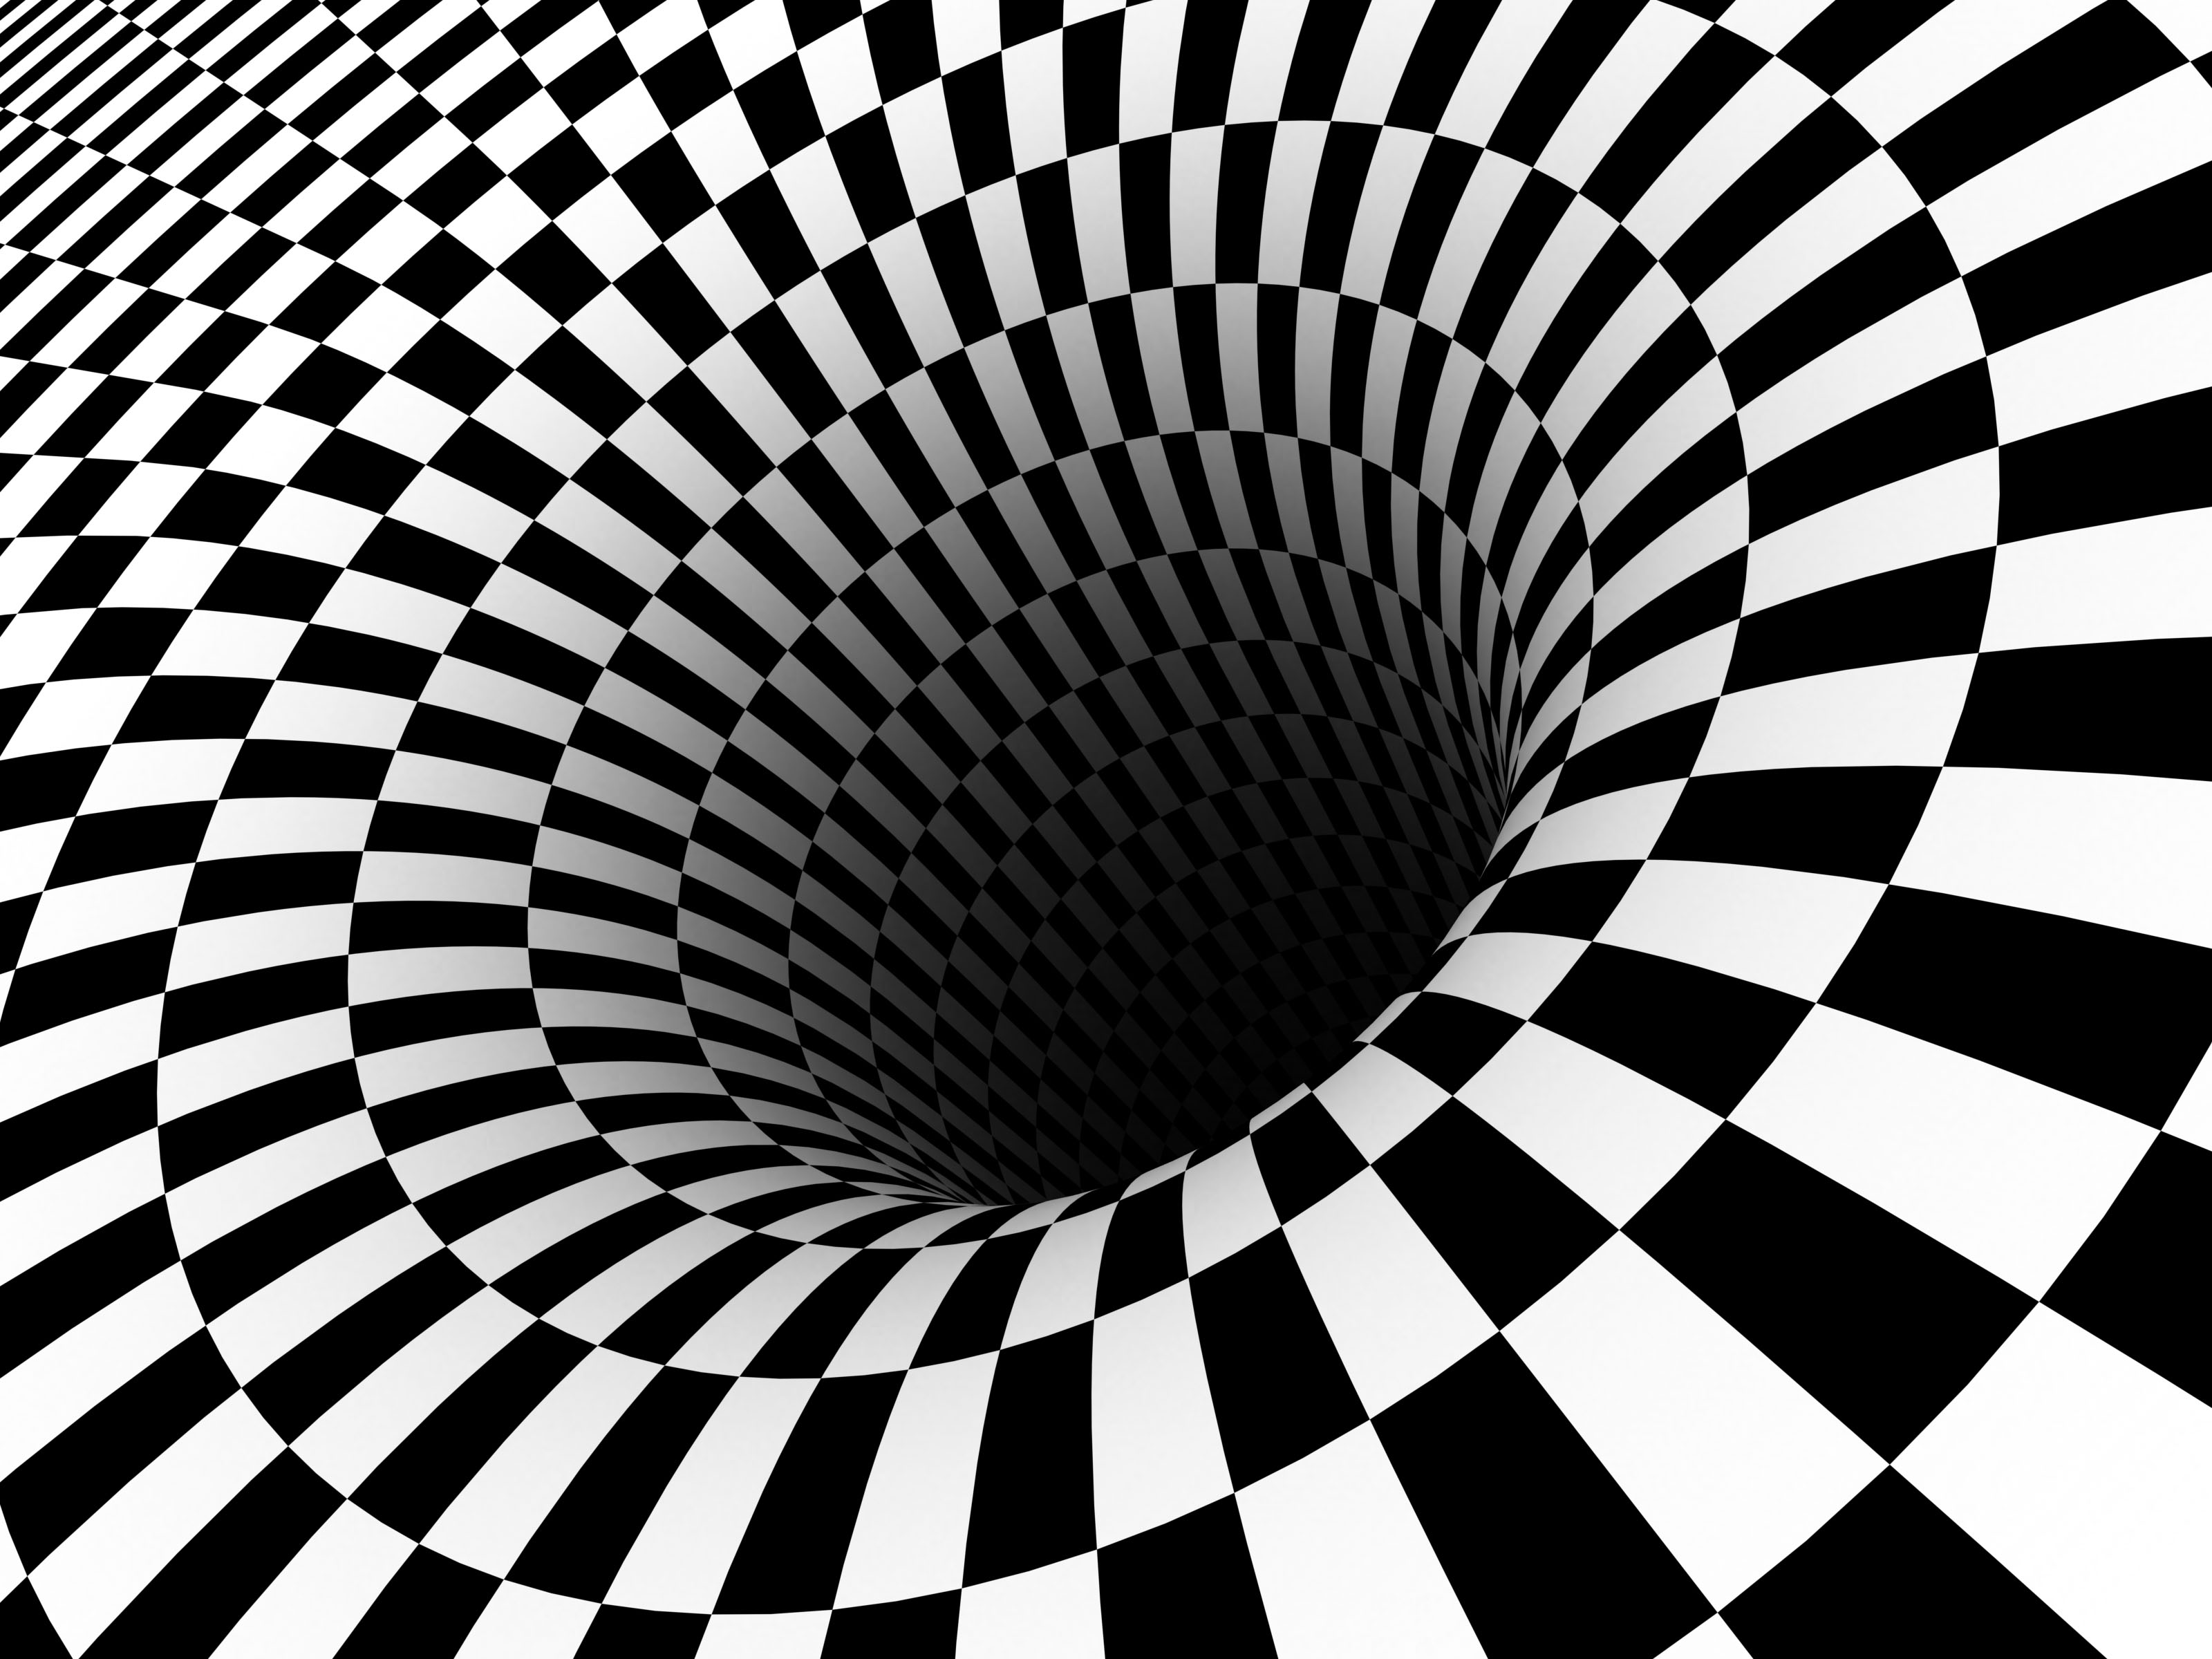 illusion hd wallpapers - photo #21